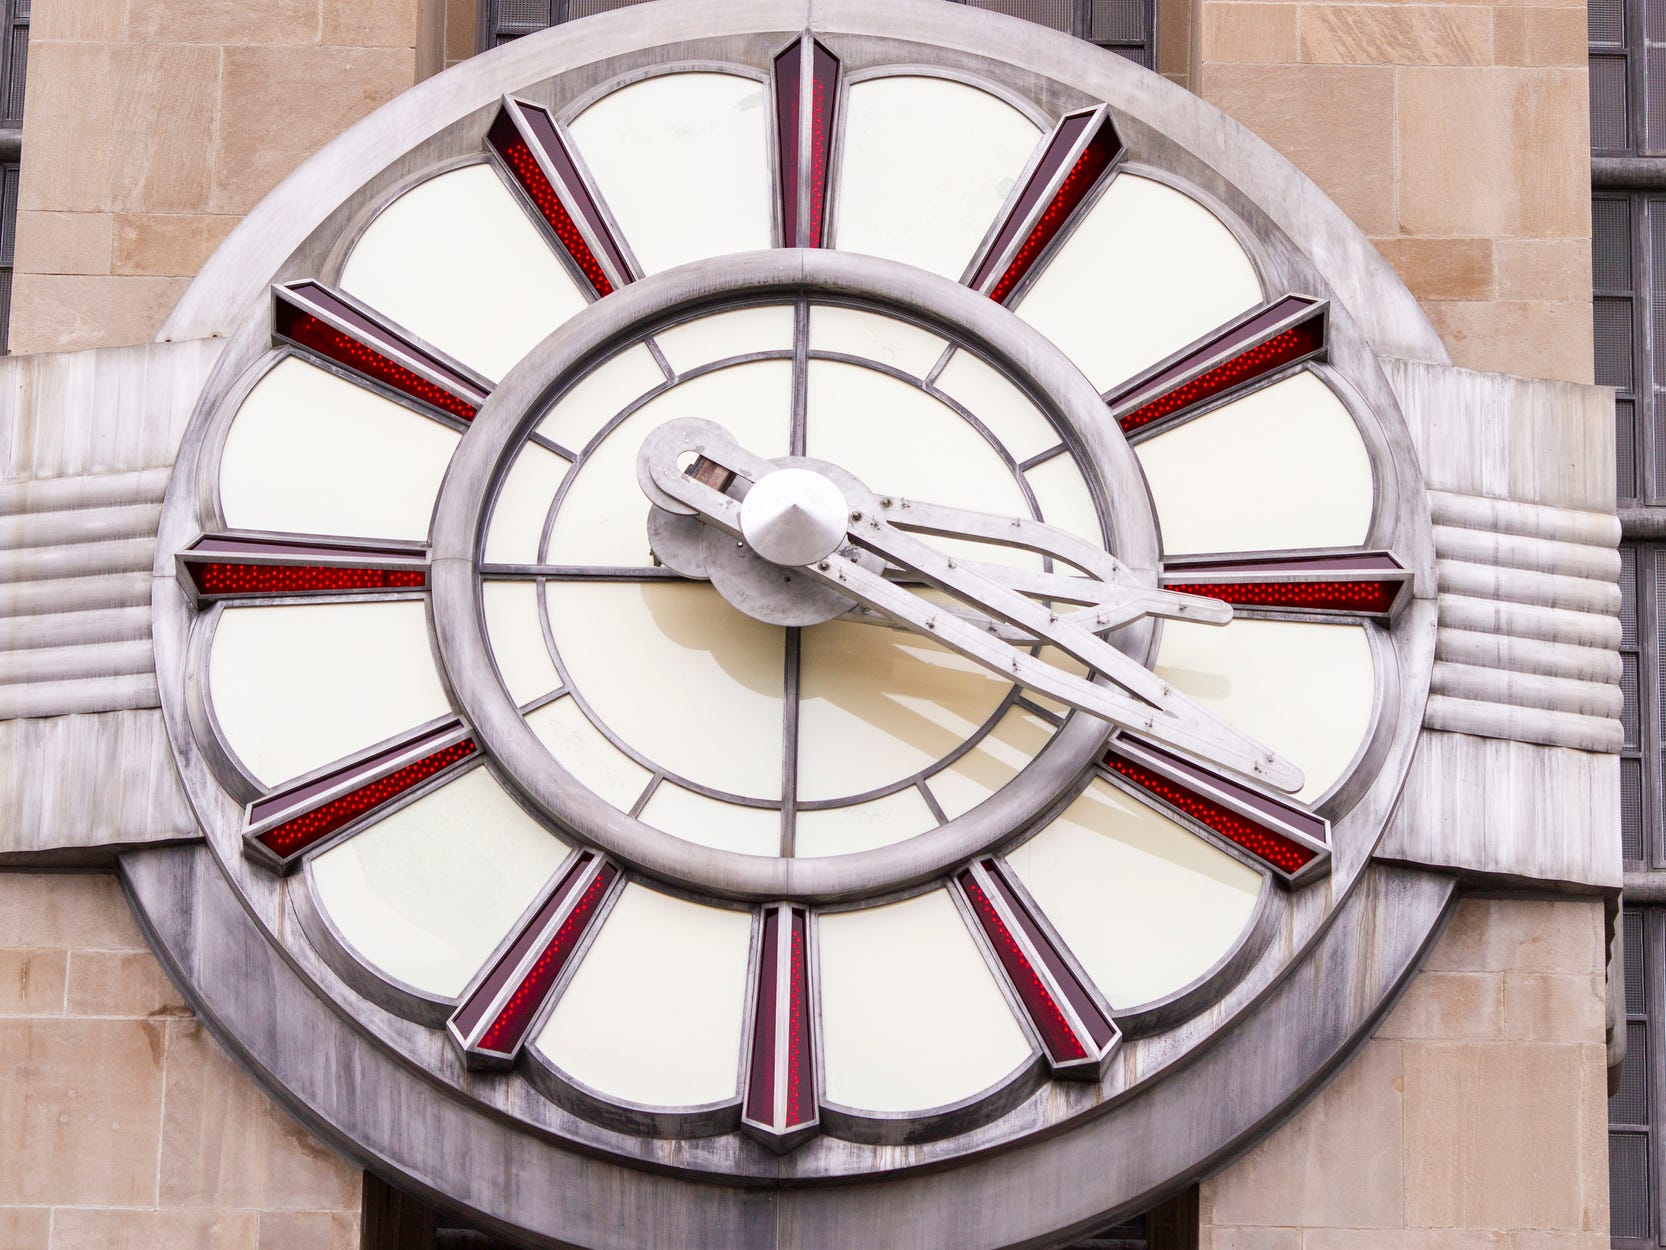 After more than a year of repairs and restoration, Union Terminal's clock was reinstalled.